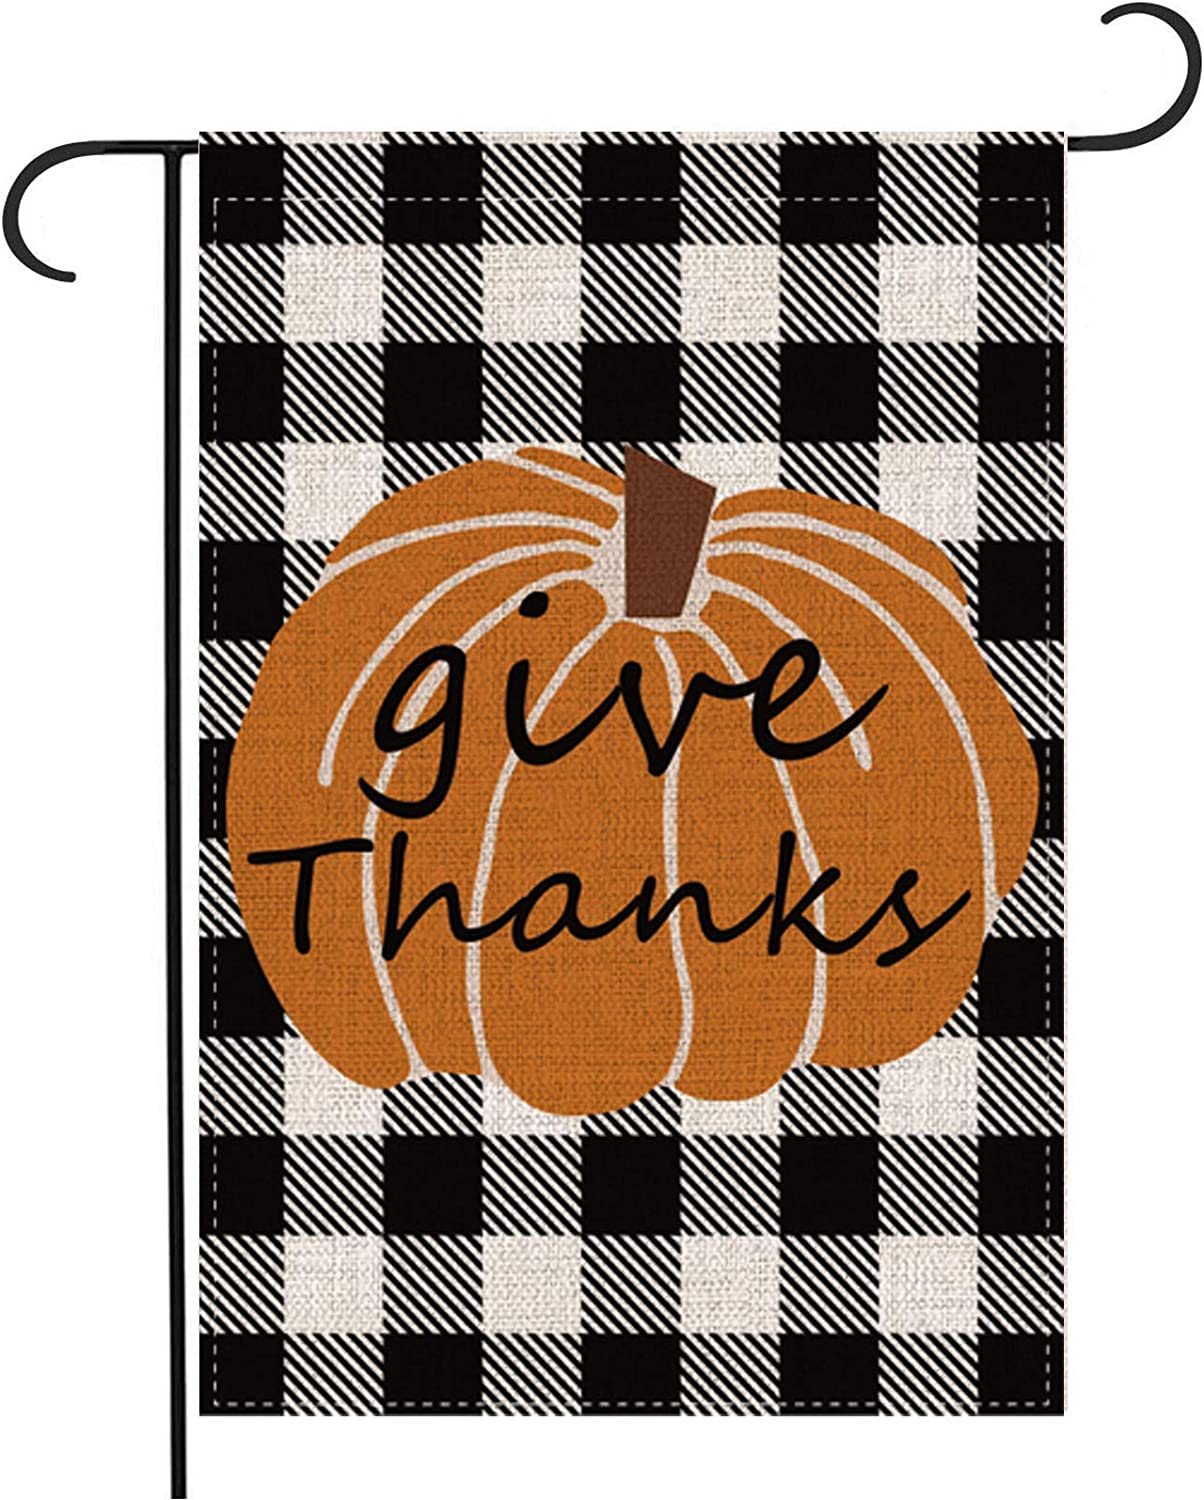 Pecsu Fall Thanksgiving Day Give Thanks Pumpkin Burlap Garden Flag Vertical Double Sided, Farmhouse Holiday Small Flags for Home House Yard Lawn Patio Garden Decoration 12.5 x 18 inch